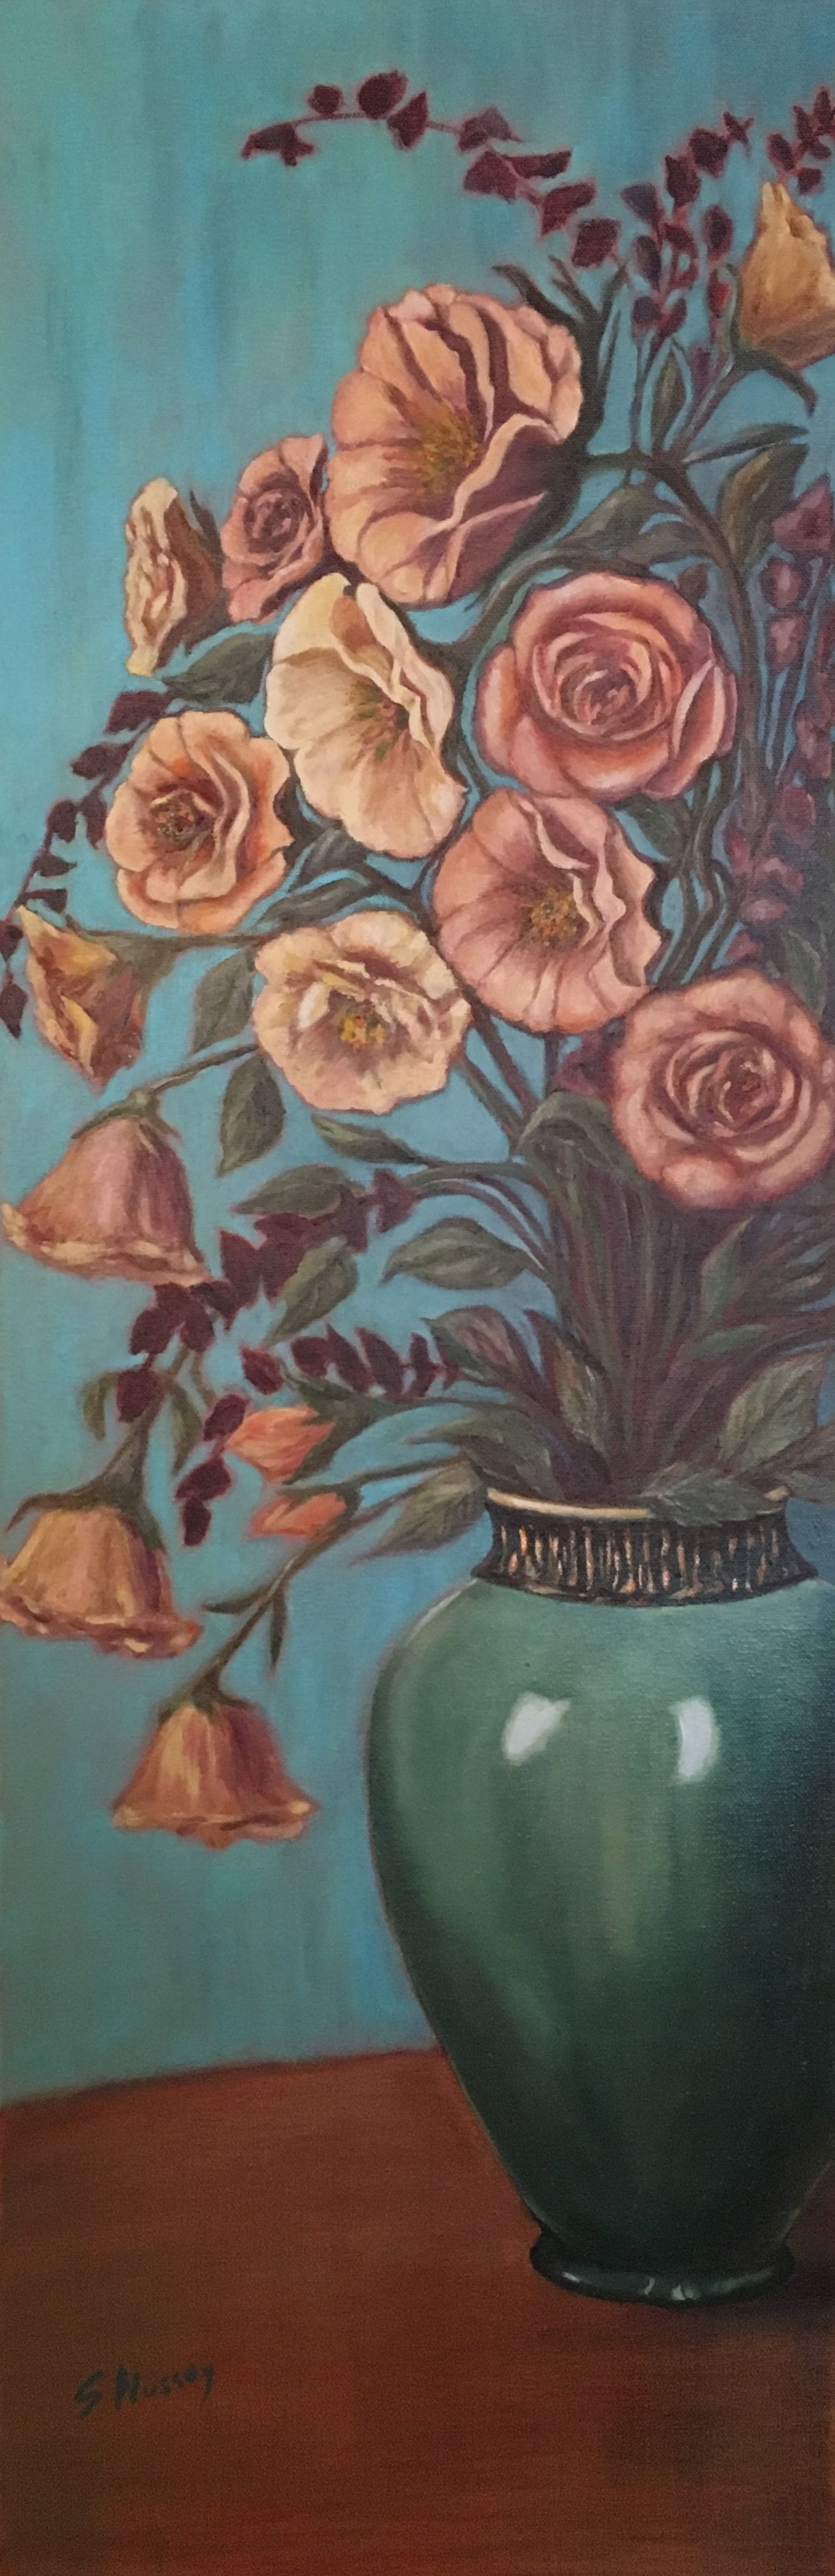 Flowers and Green Vase